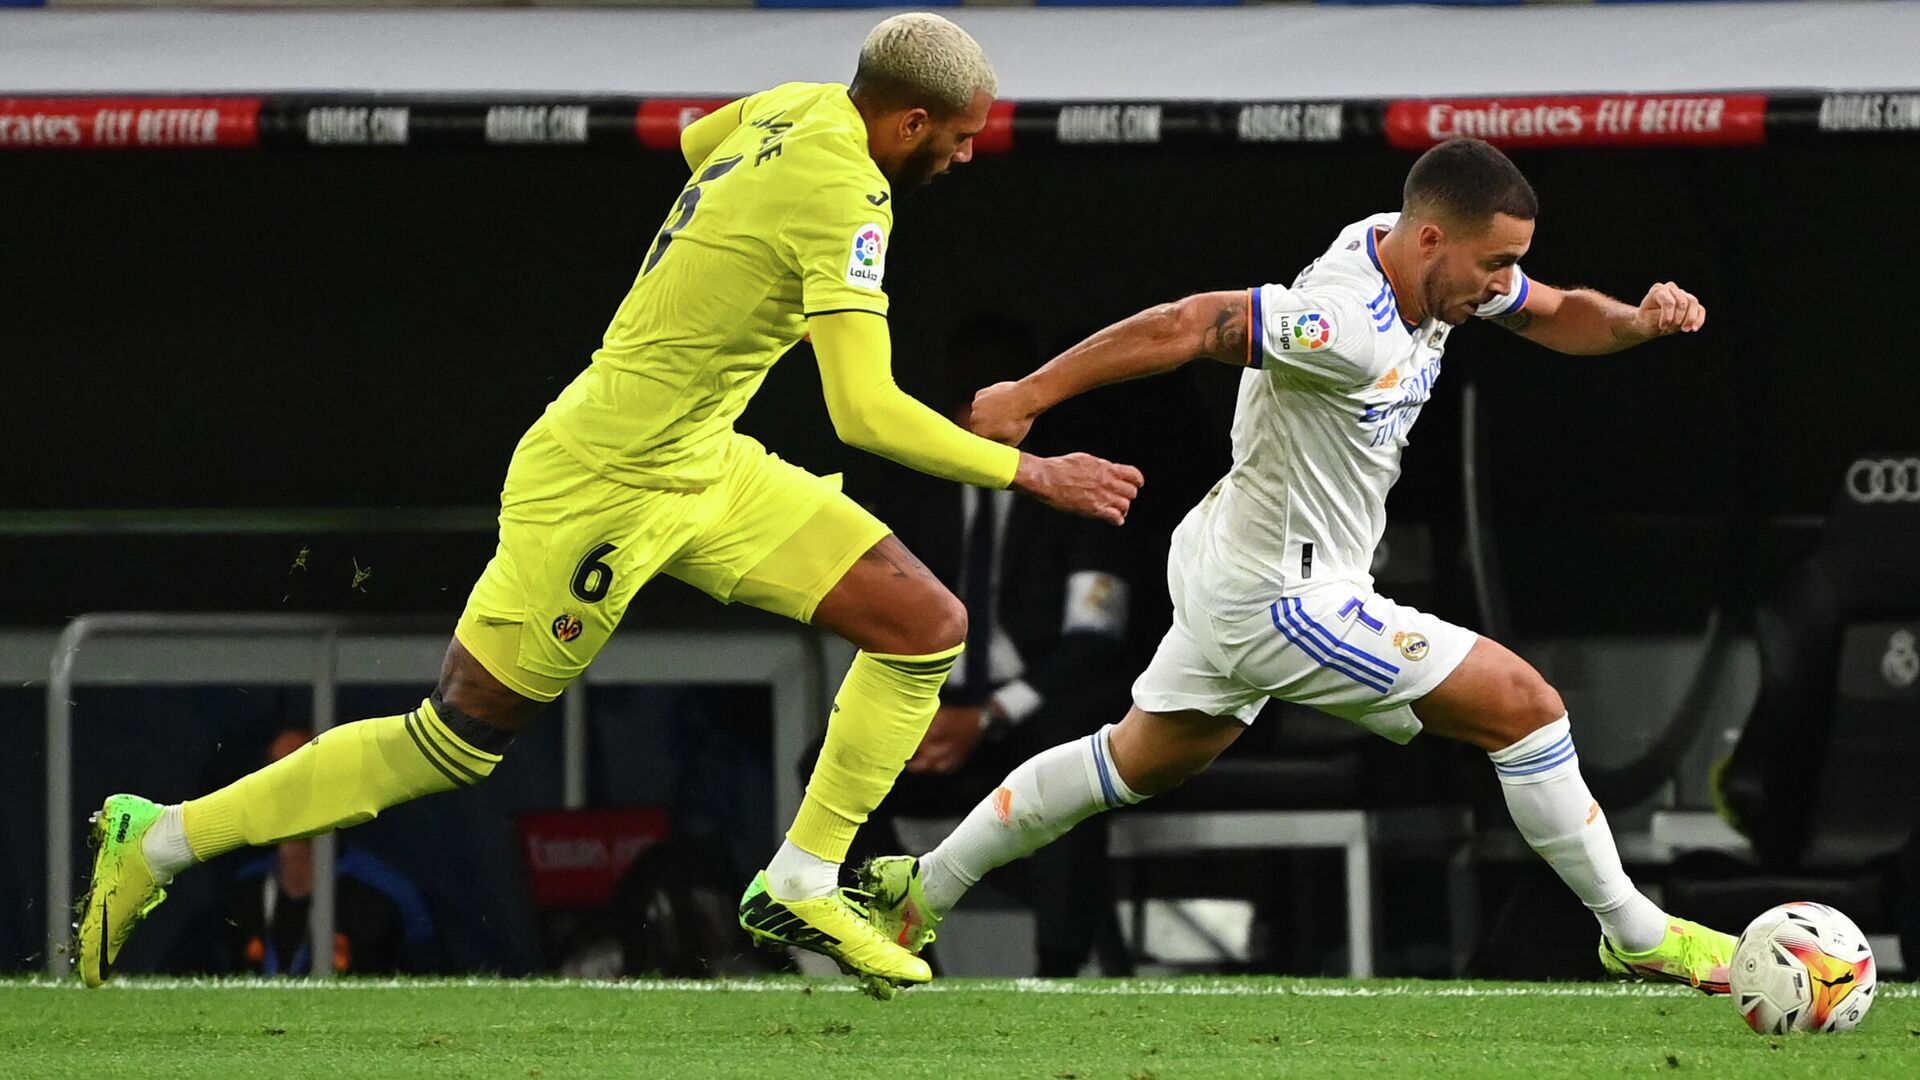 Villarreal's French midfielder Etienne Capoue (L) challenges Real Madrid's Belgian forward Eden Hazard during the Spanish League football match between Real Madrid and Villarreal CF at the Santiago Bernabeu stadium in Madrid on September 25, 2021. (Photo by GABRIEL BOUYS / AFP) - РИА Новости, 1920, 26.09.2021